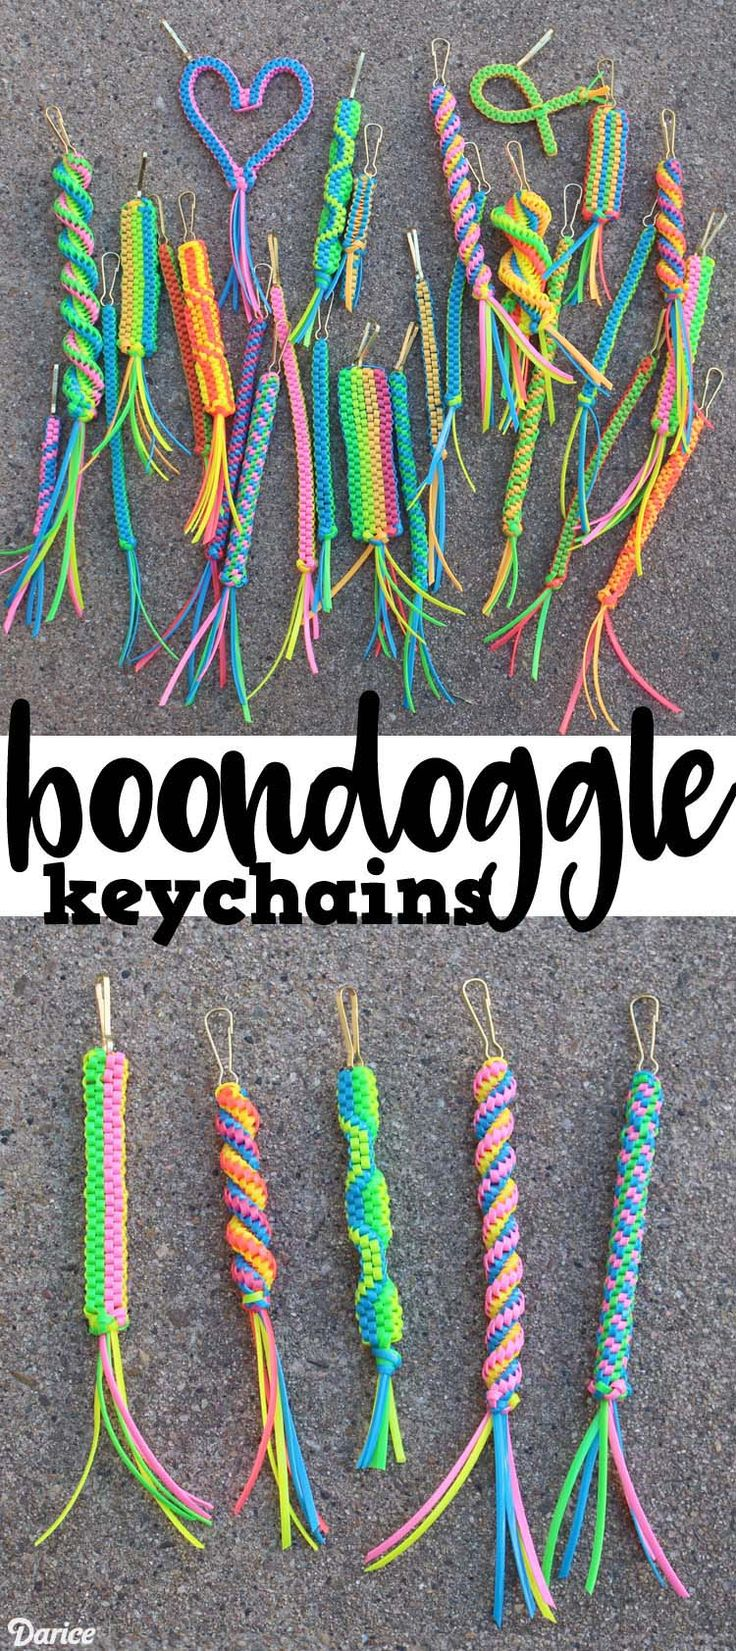 How-to-Make-Boondoggle-Keychains-Darice-1